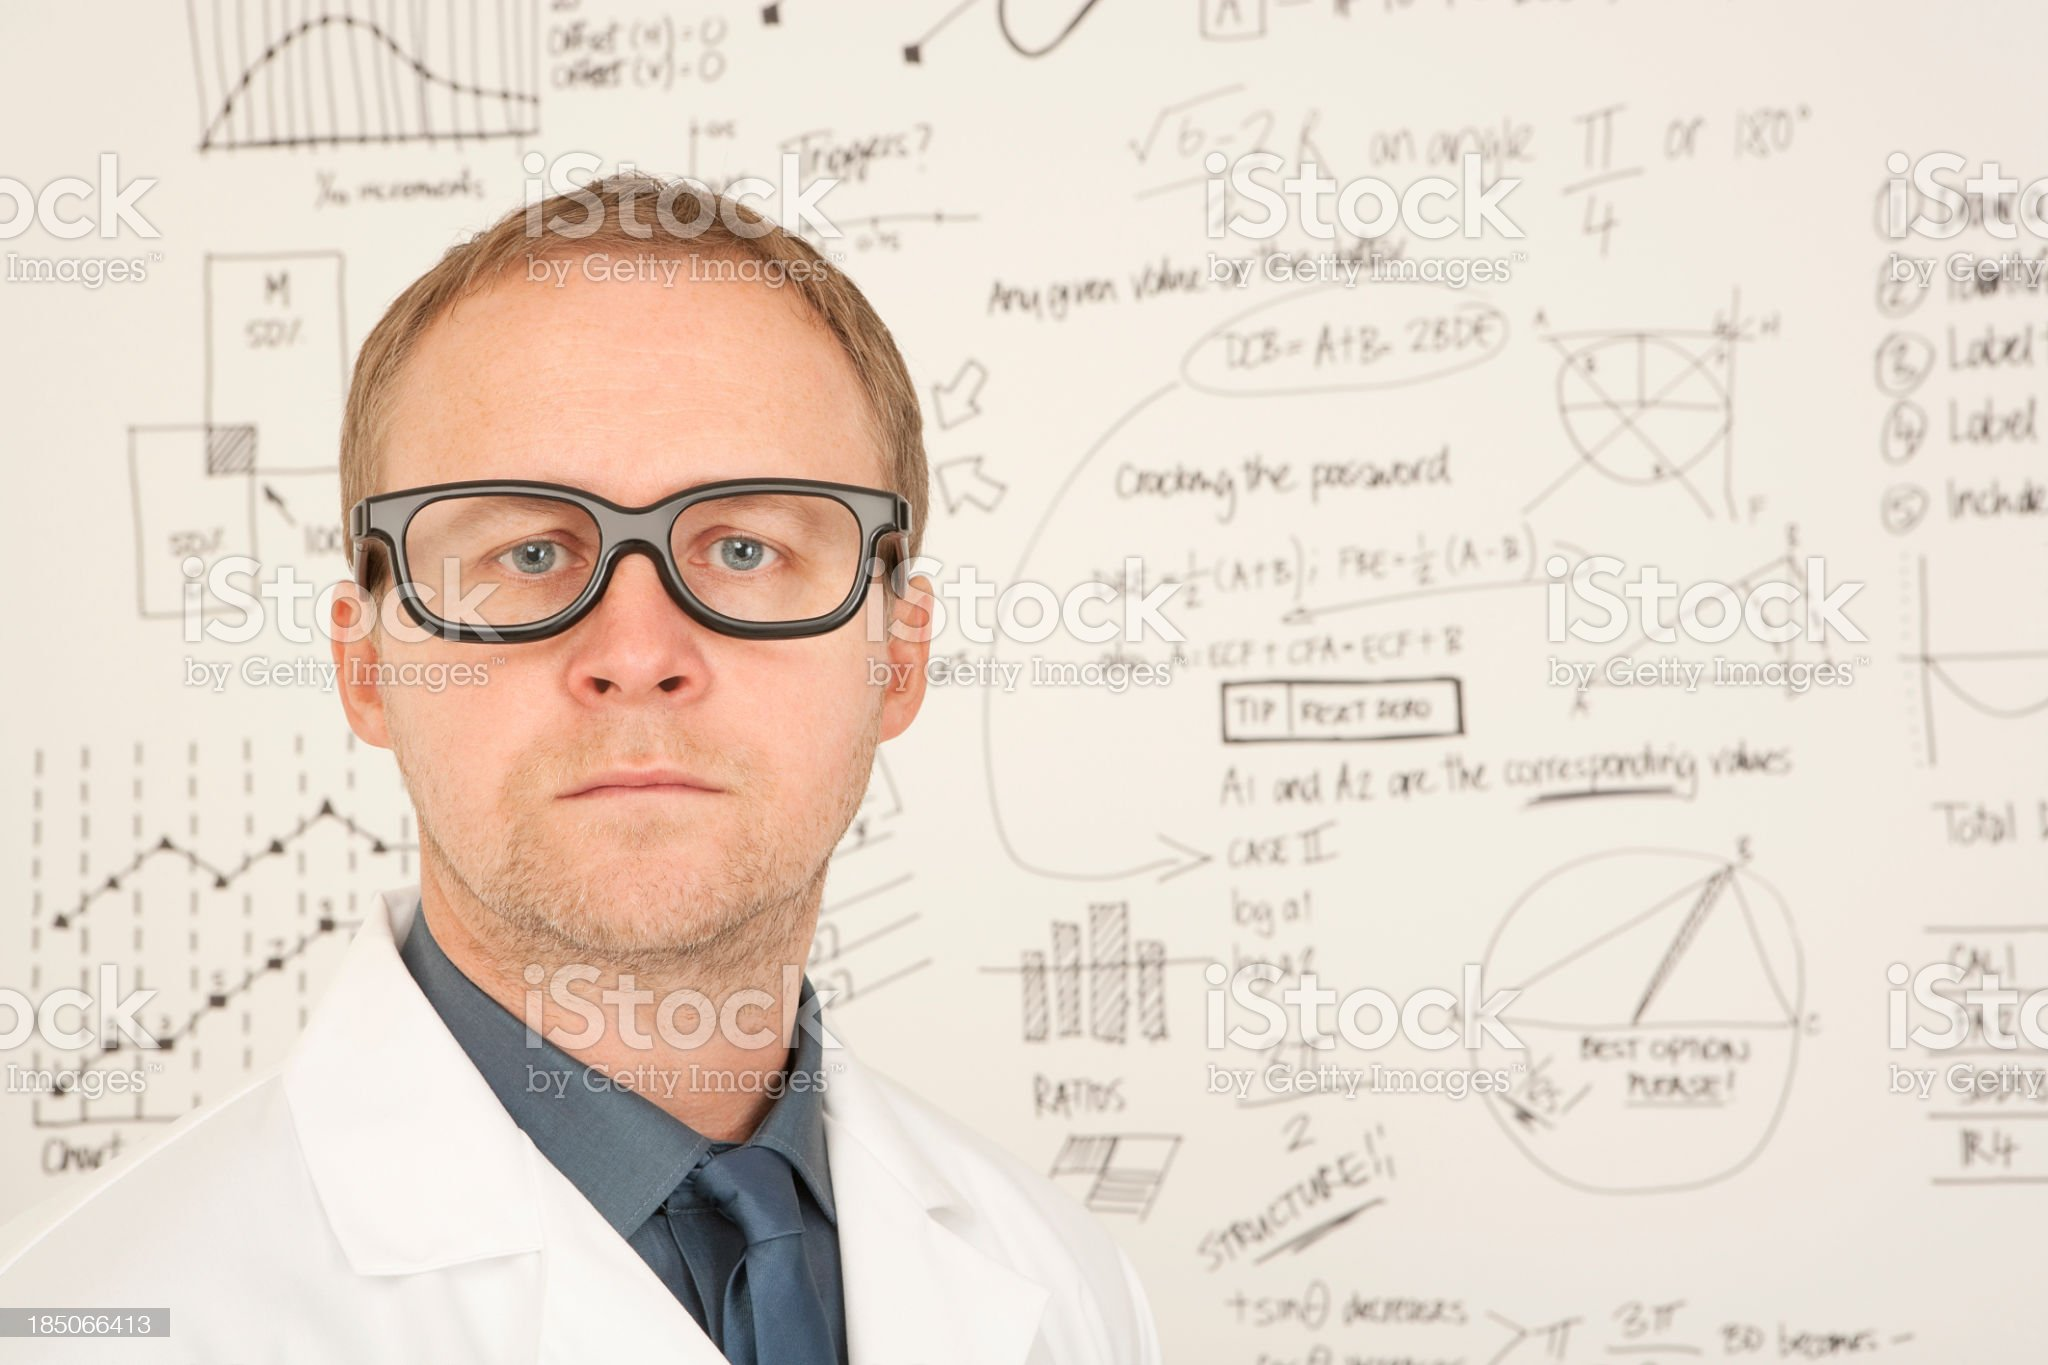 Intelligent man in white lab coat royalty-free stock photo